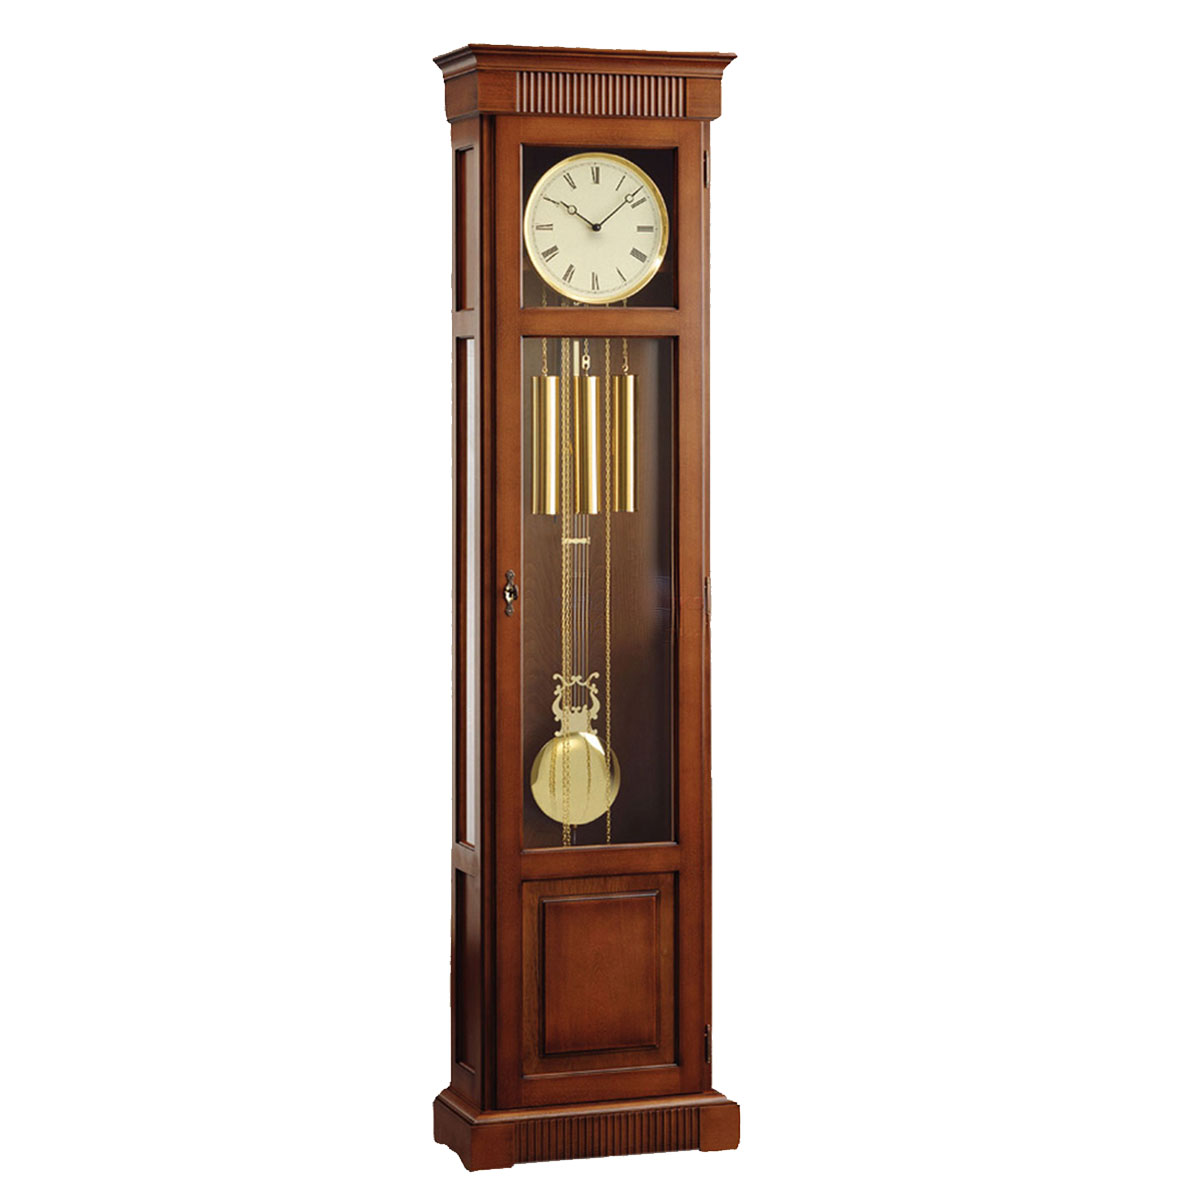 ca clocks floors en clock kieninger floor la pendulerie